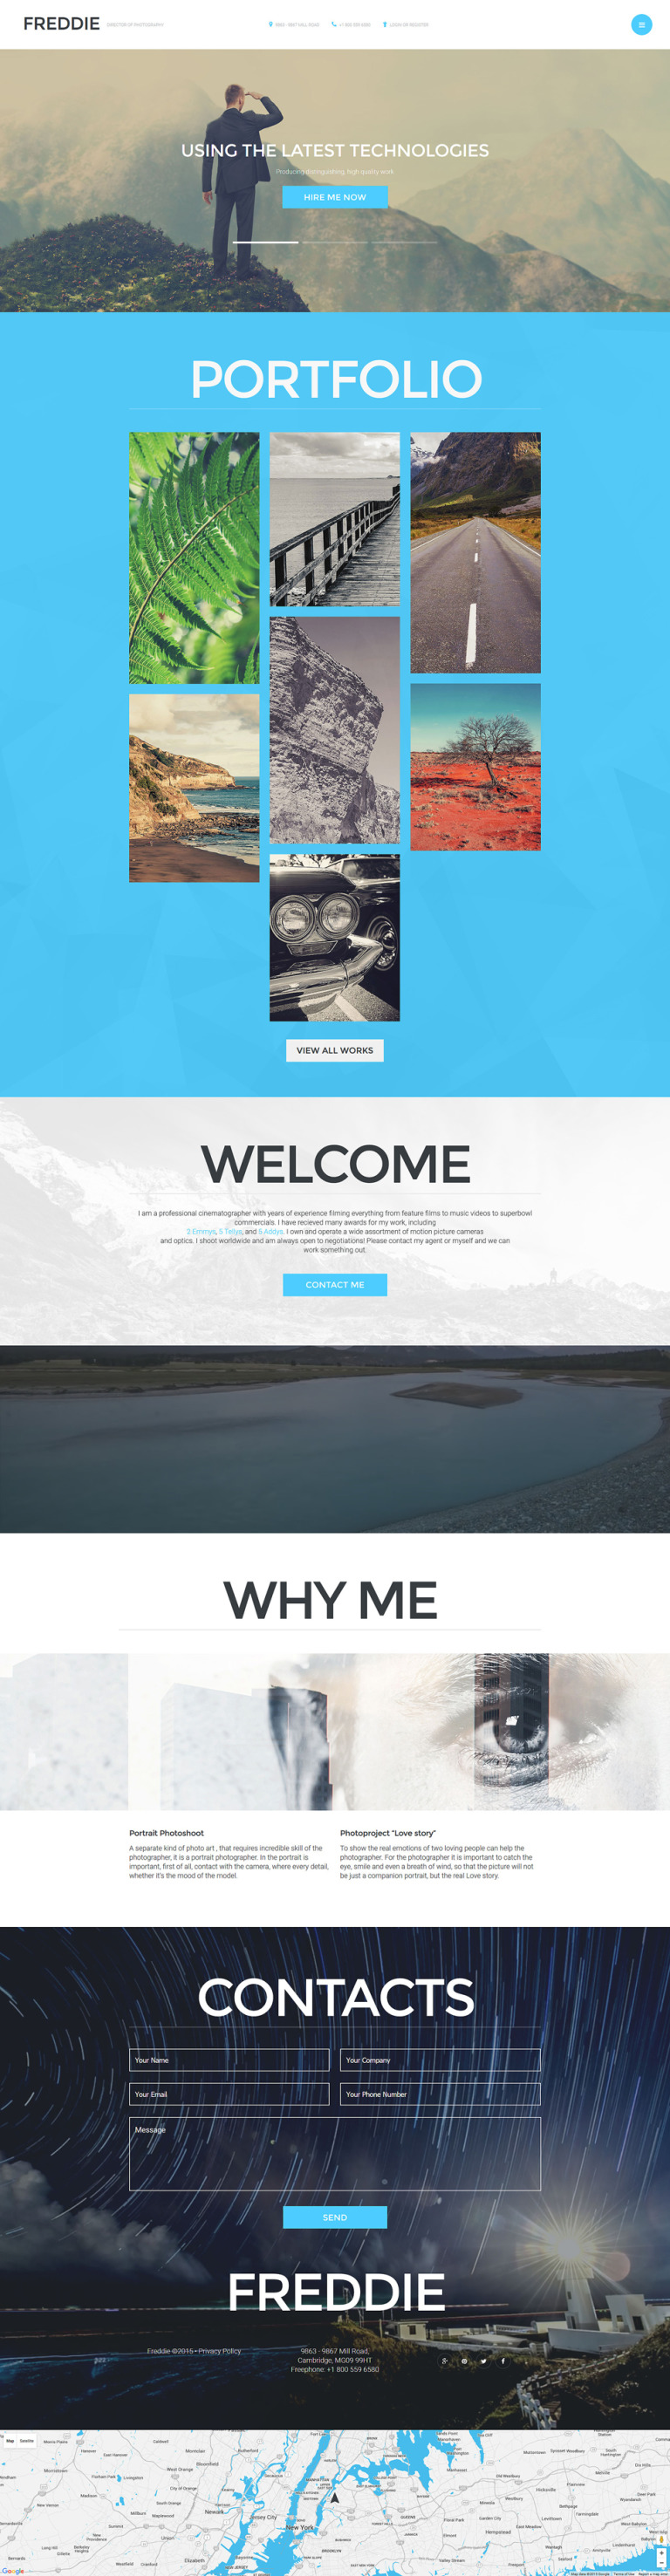 Freddie Joomla Template New Screenshots BIG